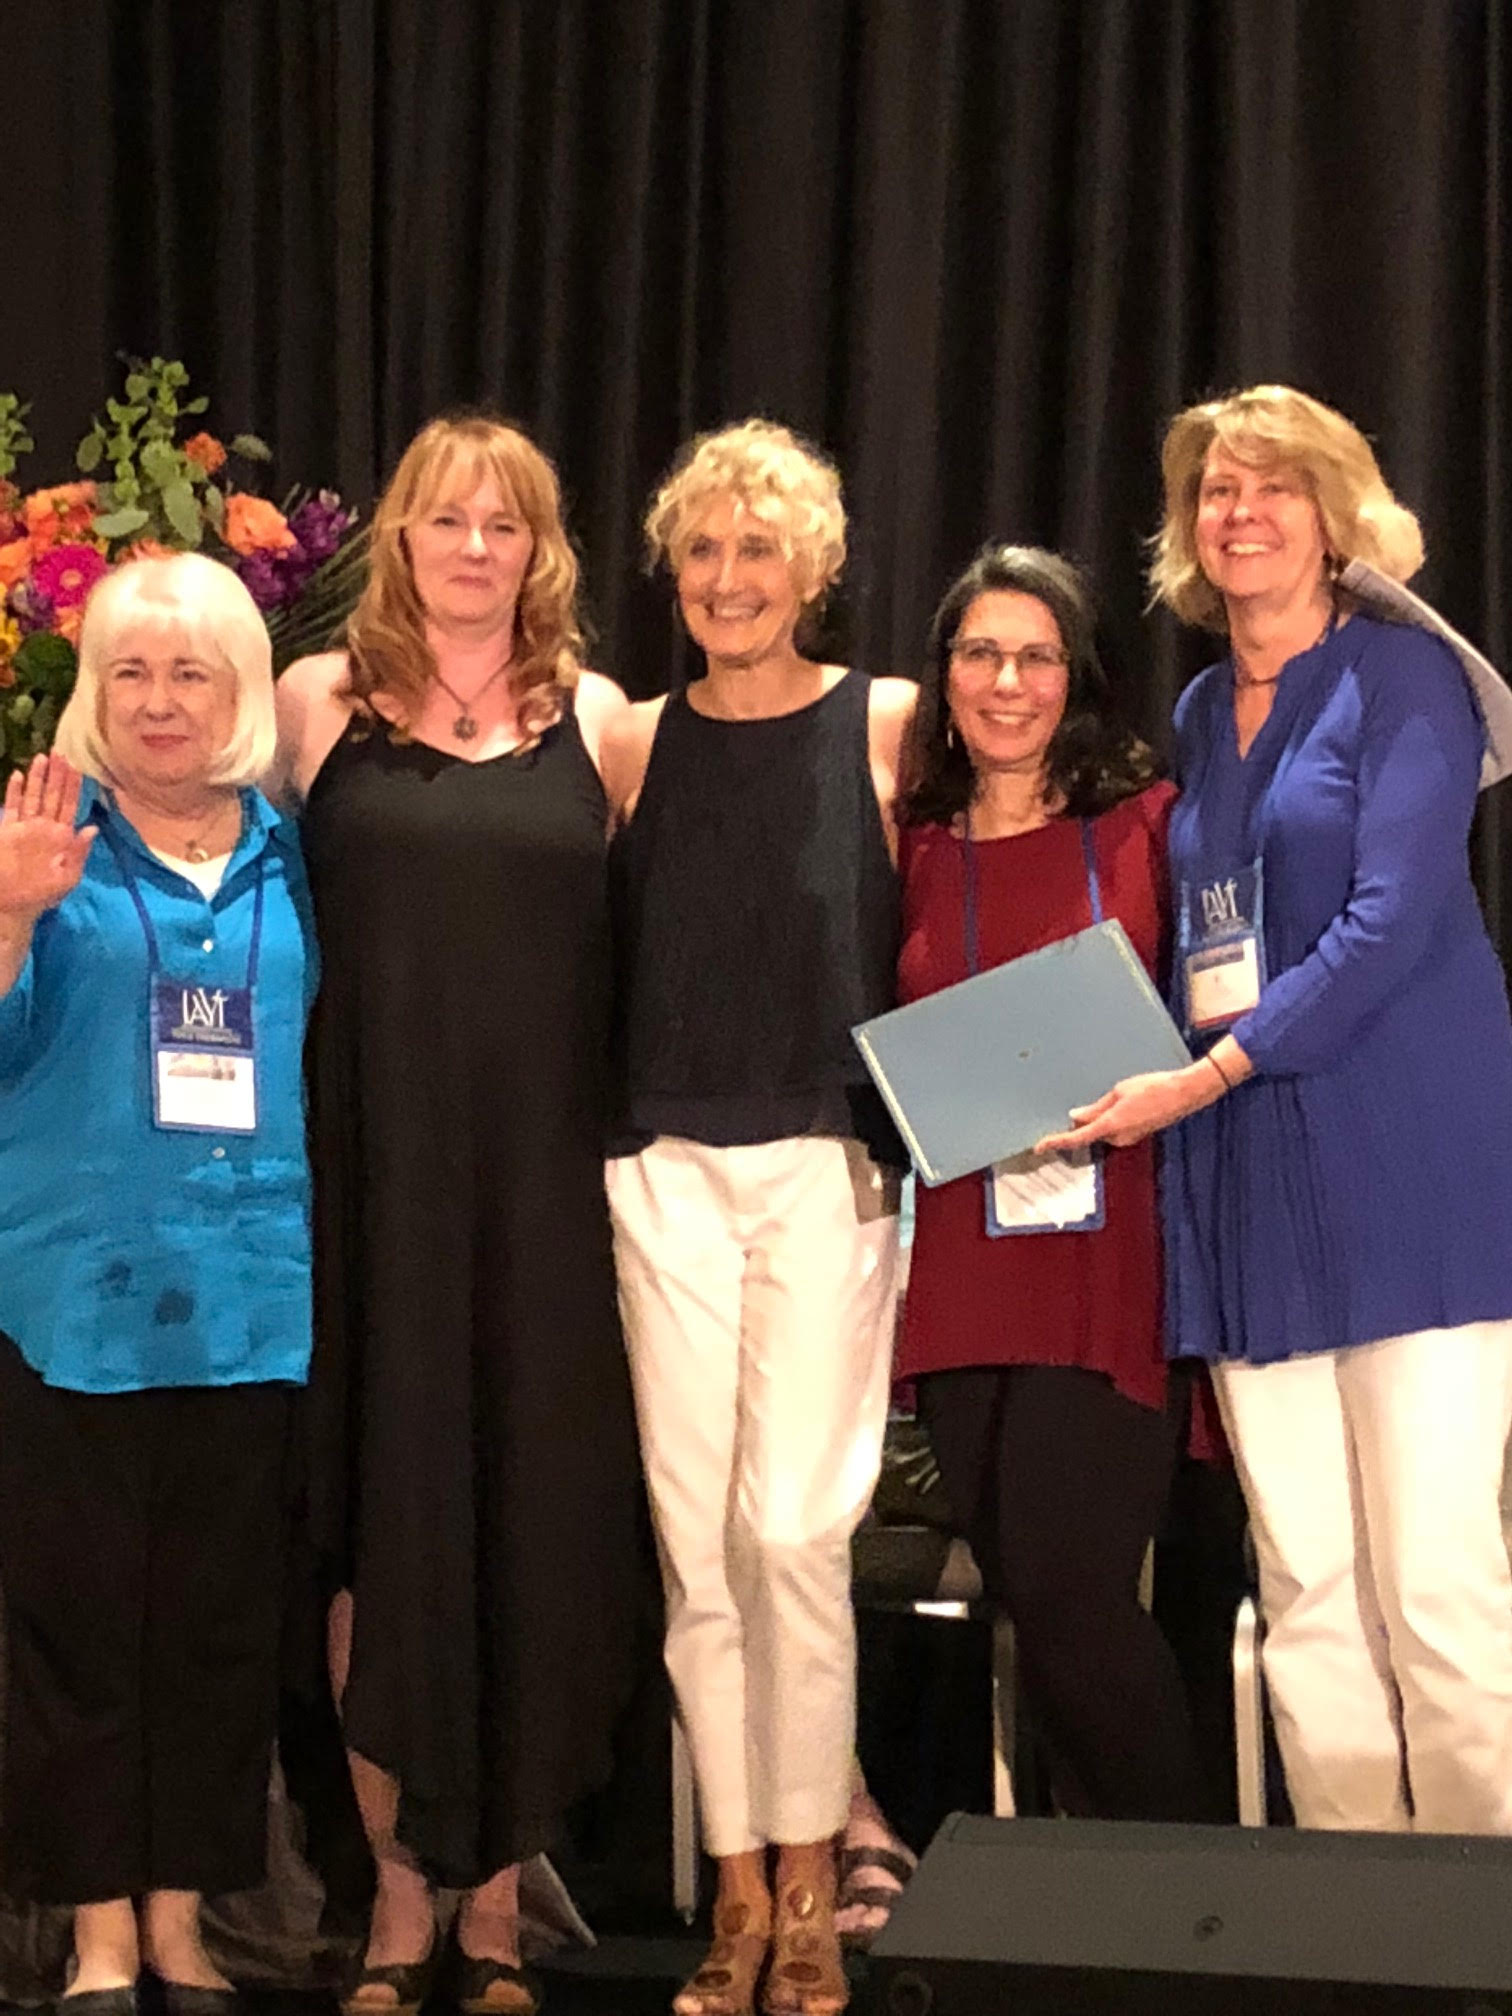 SCHYS Program Directors receive IAYT Accreditation certification at 2018 SYTAR. June 16, 2018.